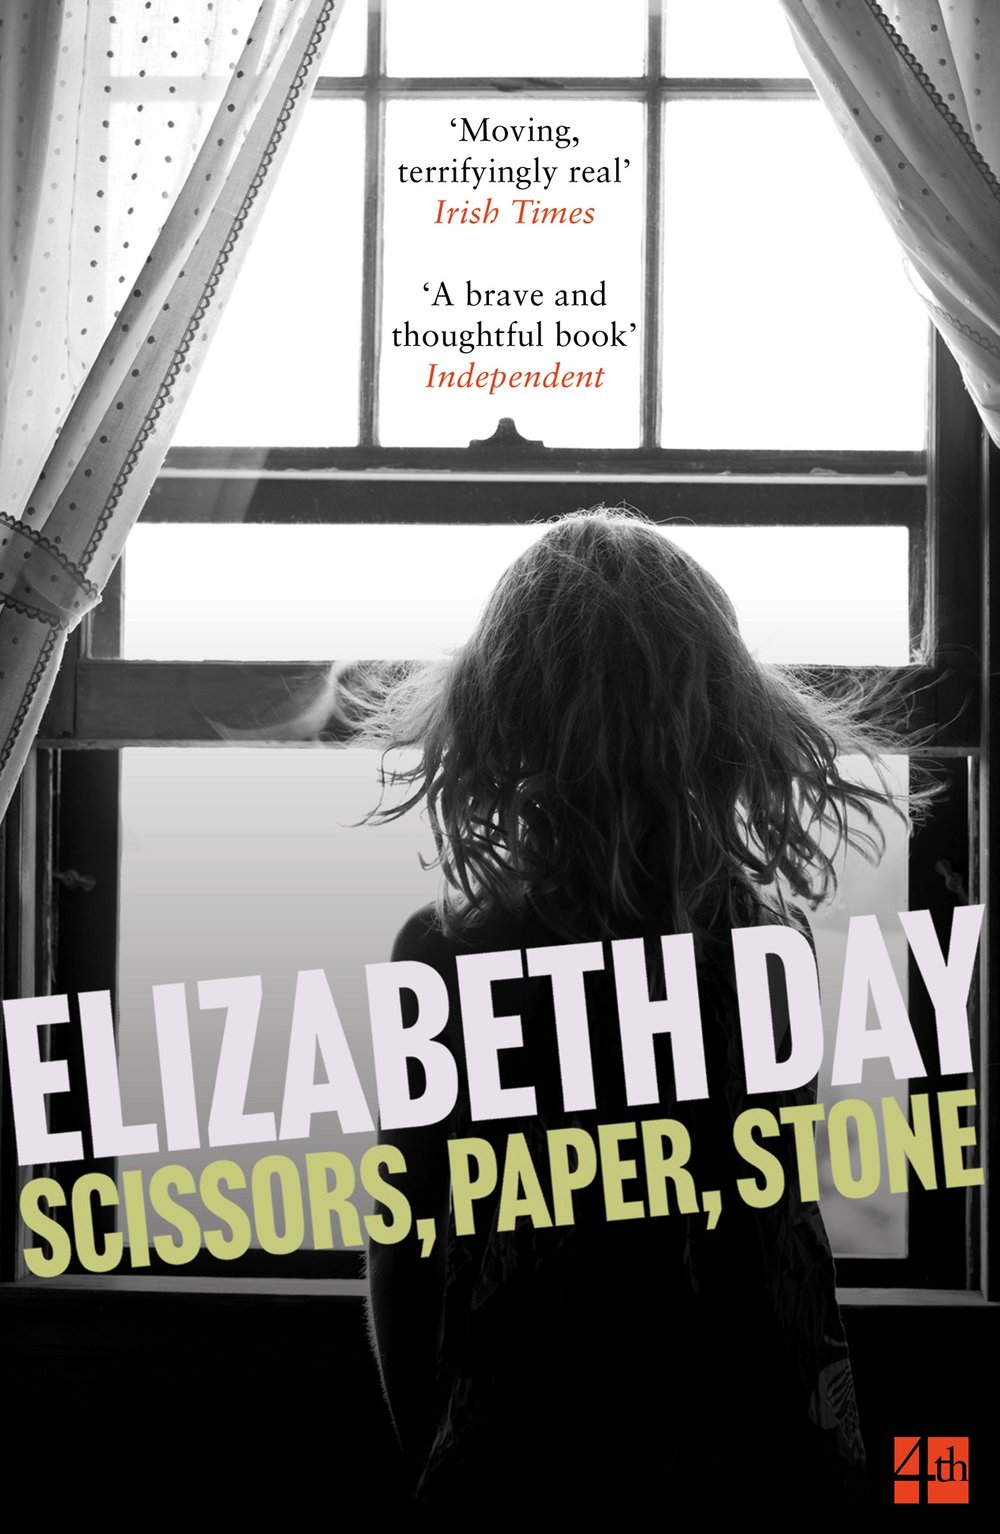 Scissors, Paper, Stone - by award winning author Elizabeth Day